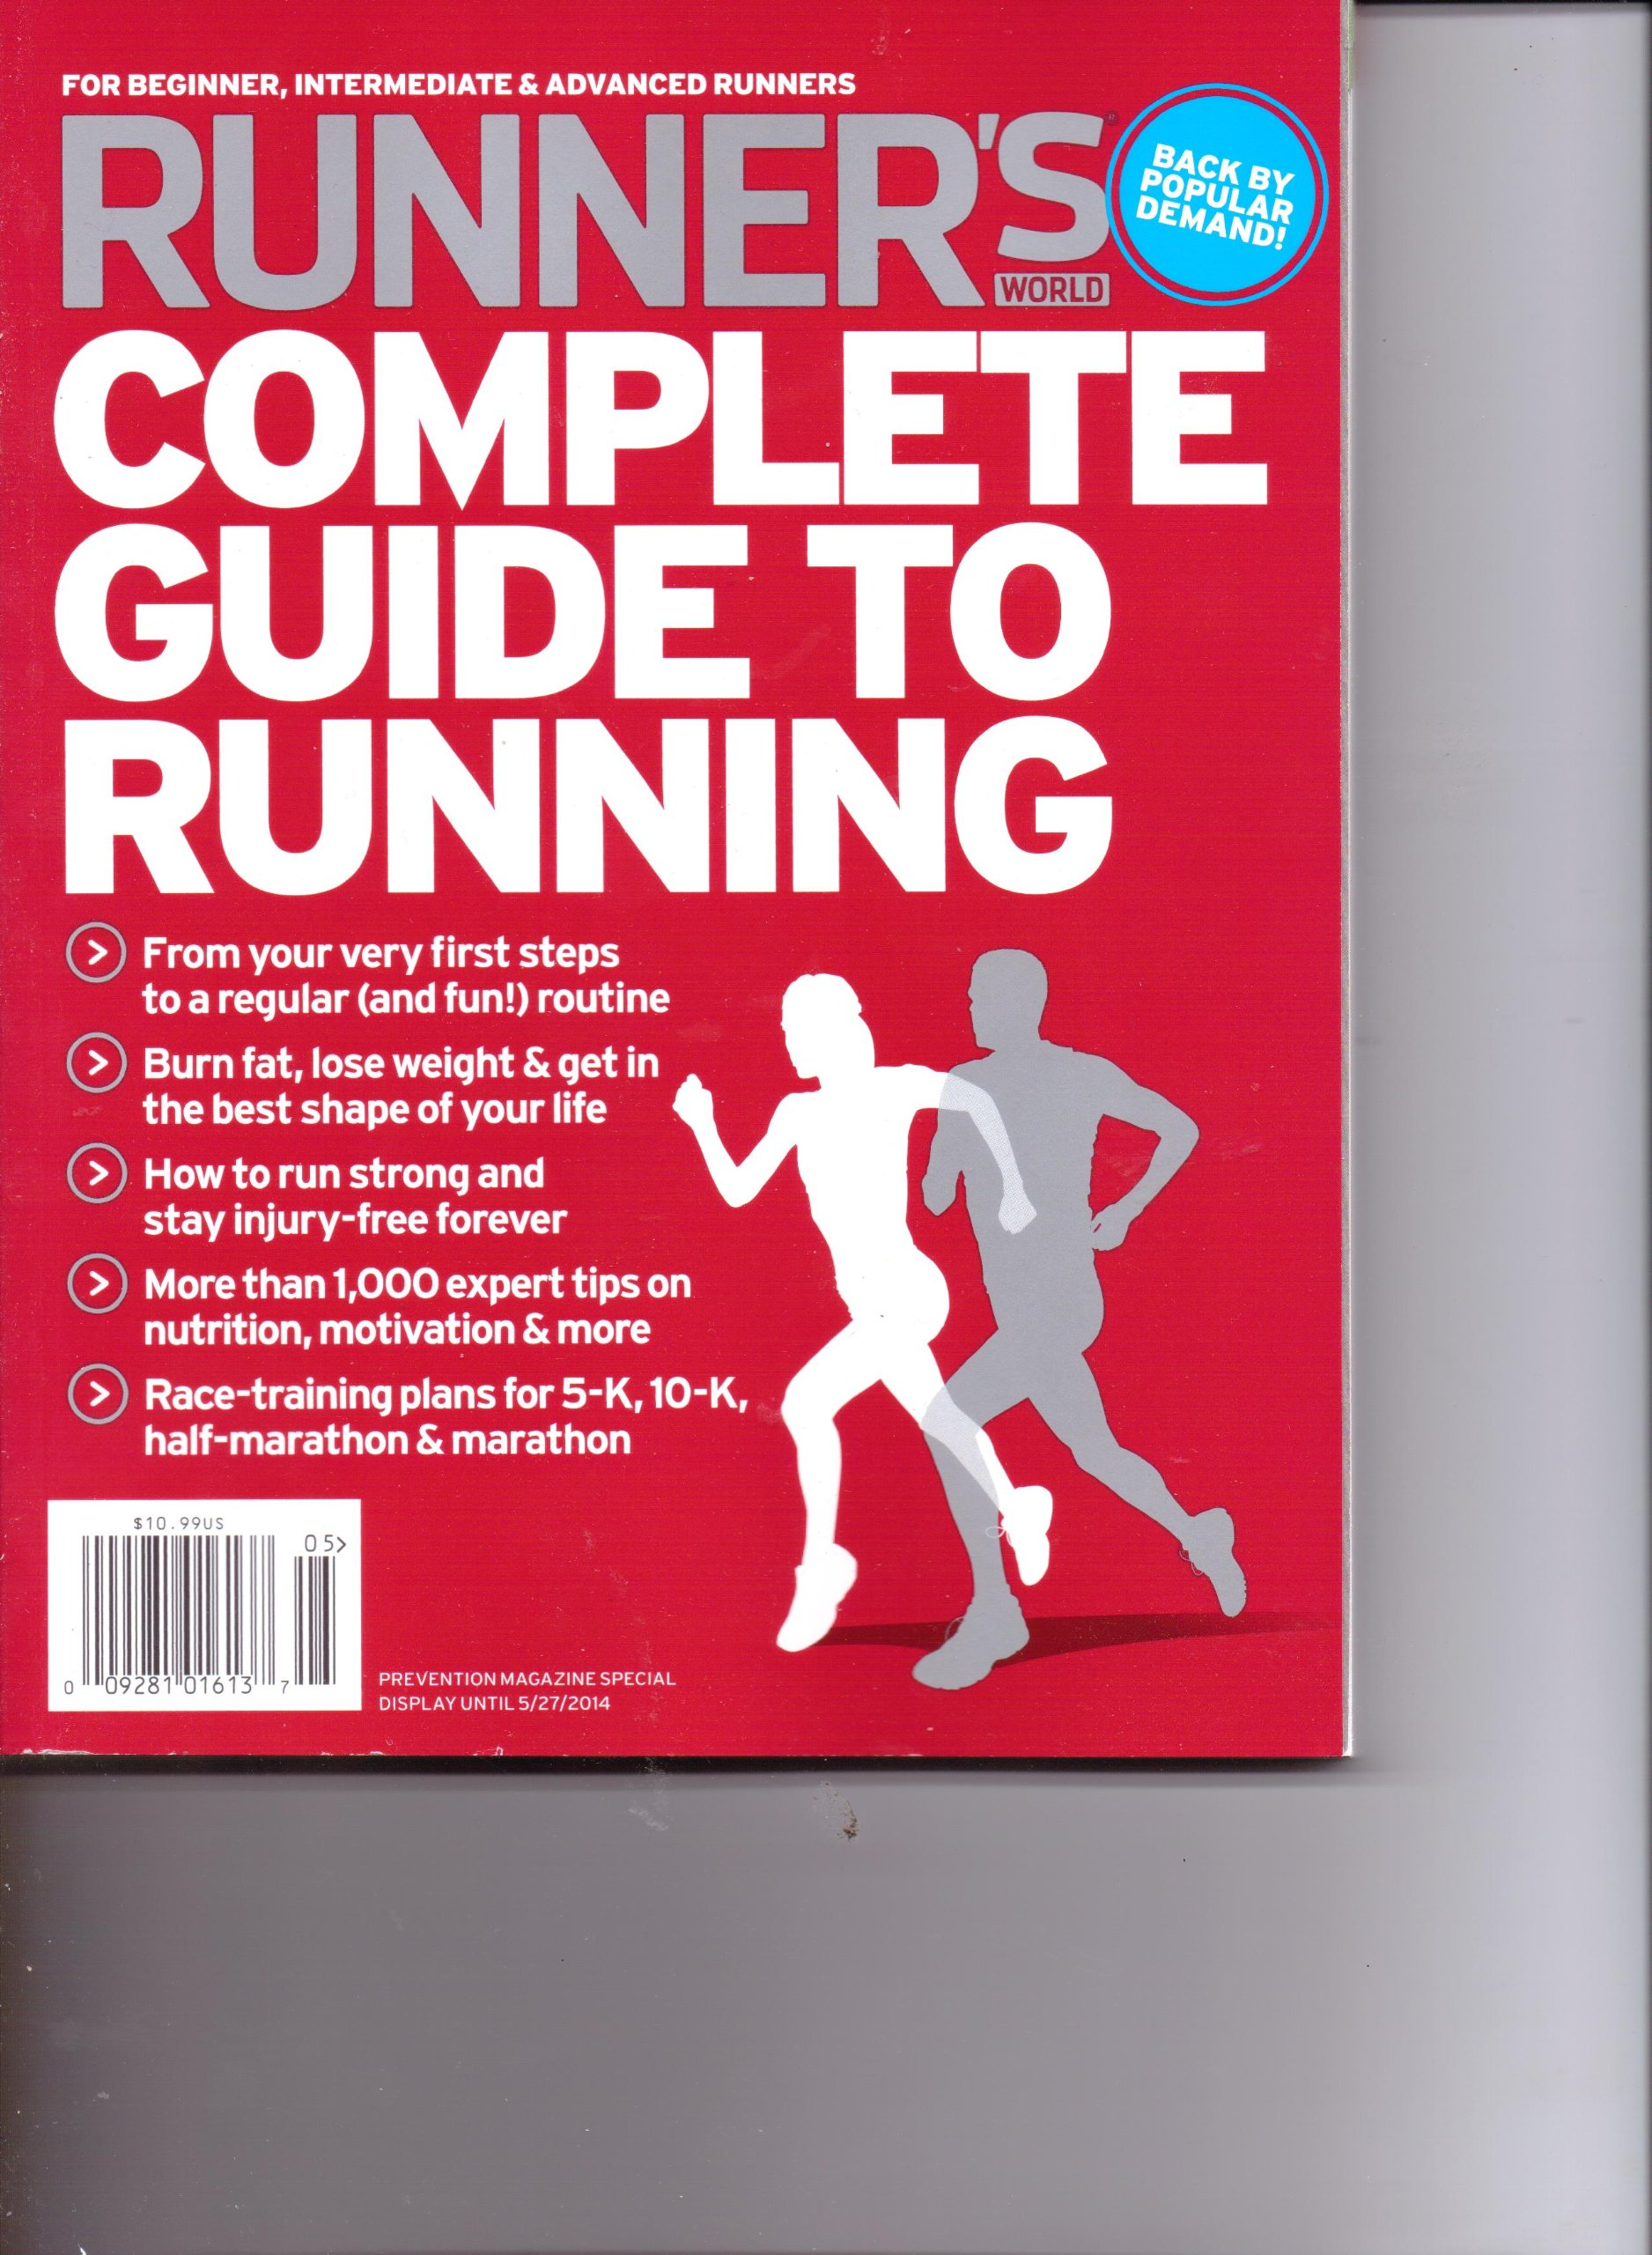 RUNNER'S WORLD - COMPLETE GUIDE TO RUNNING. 2014.